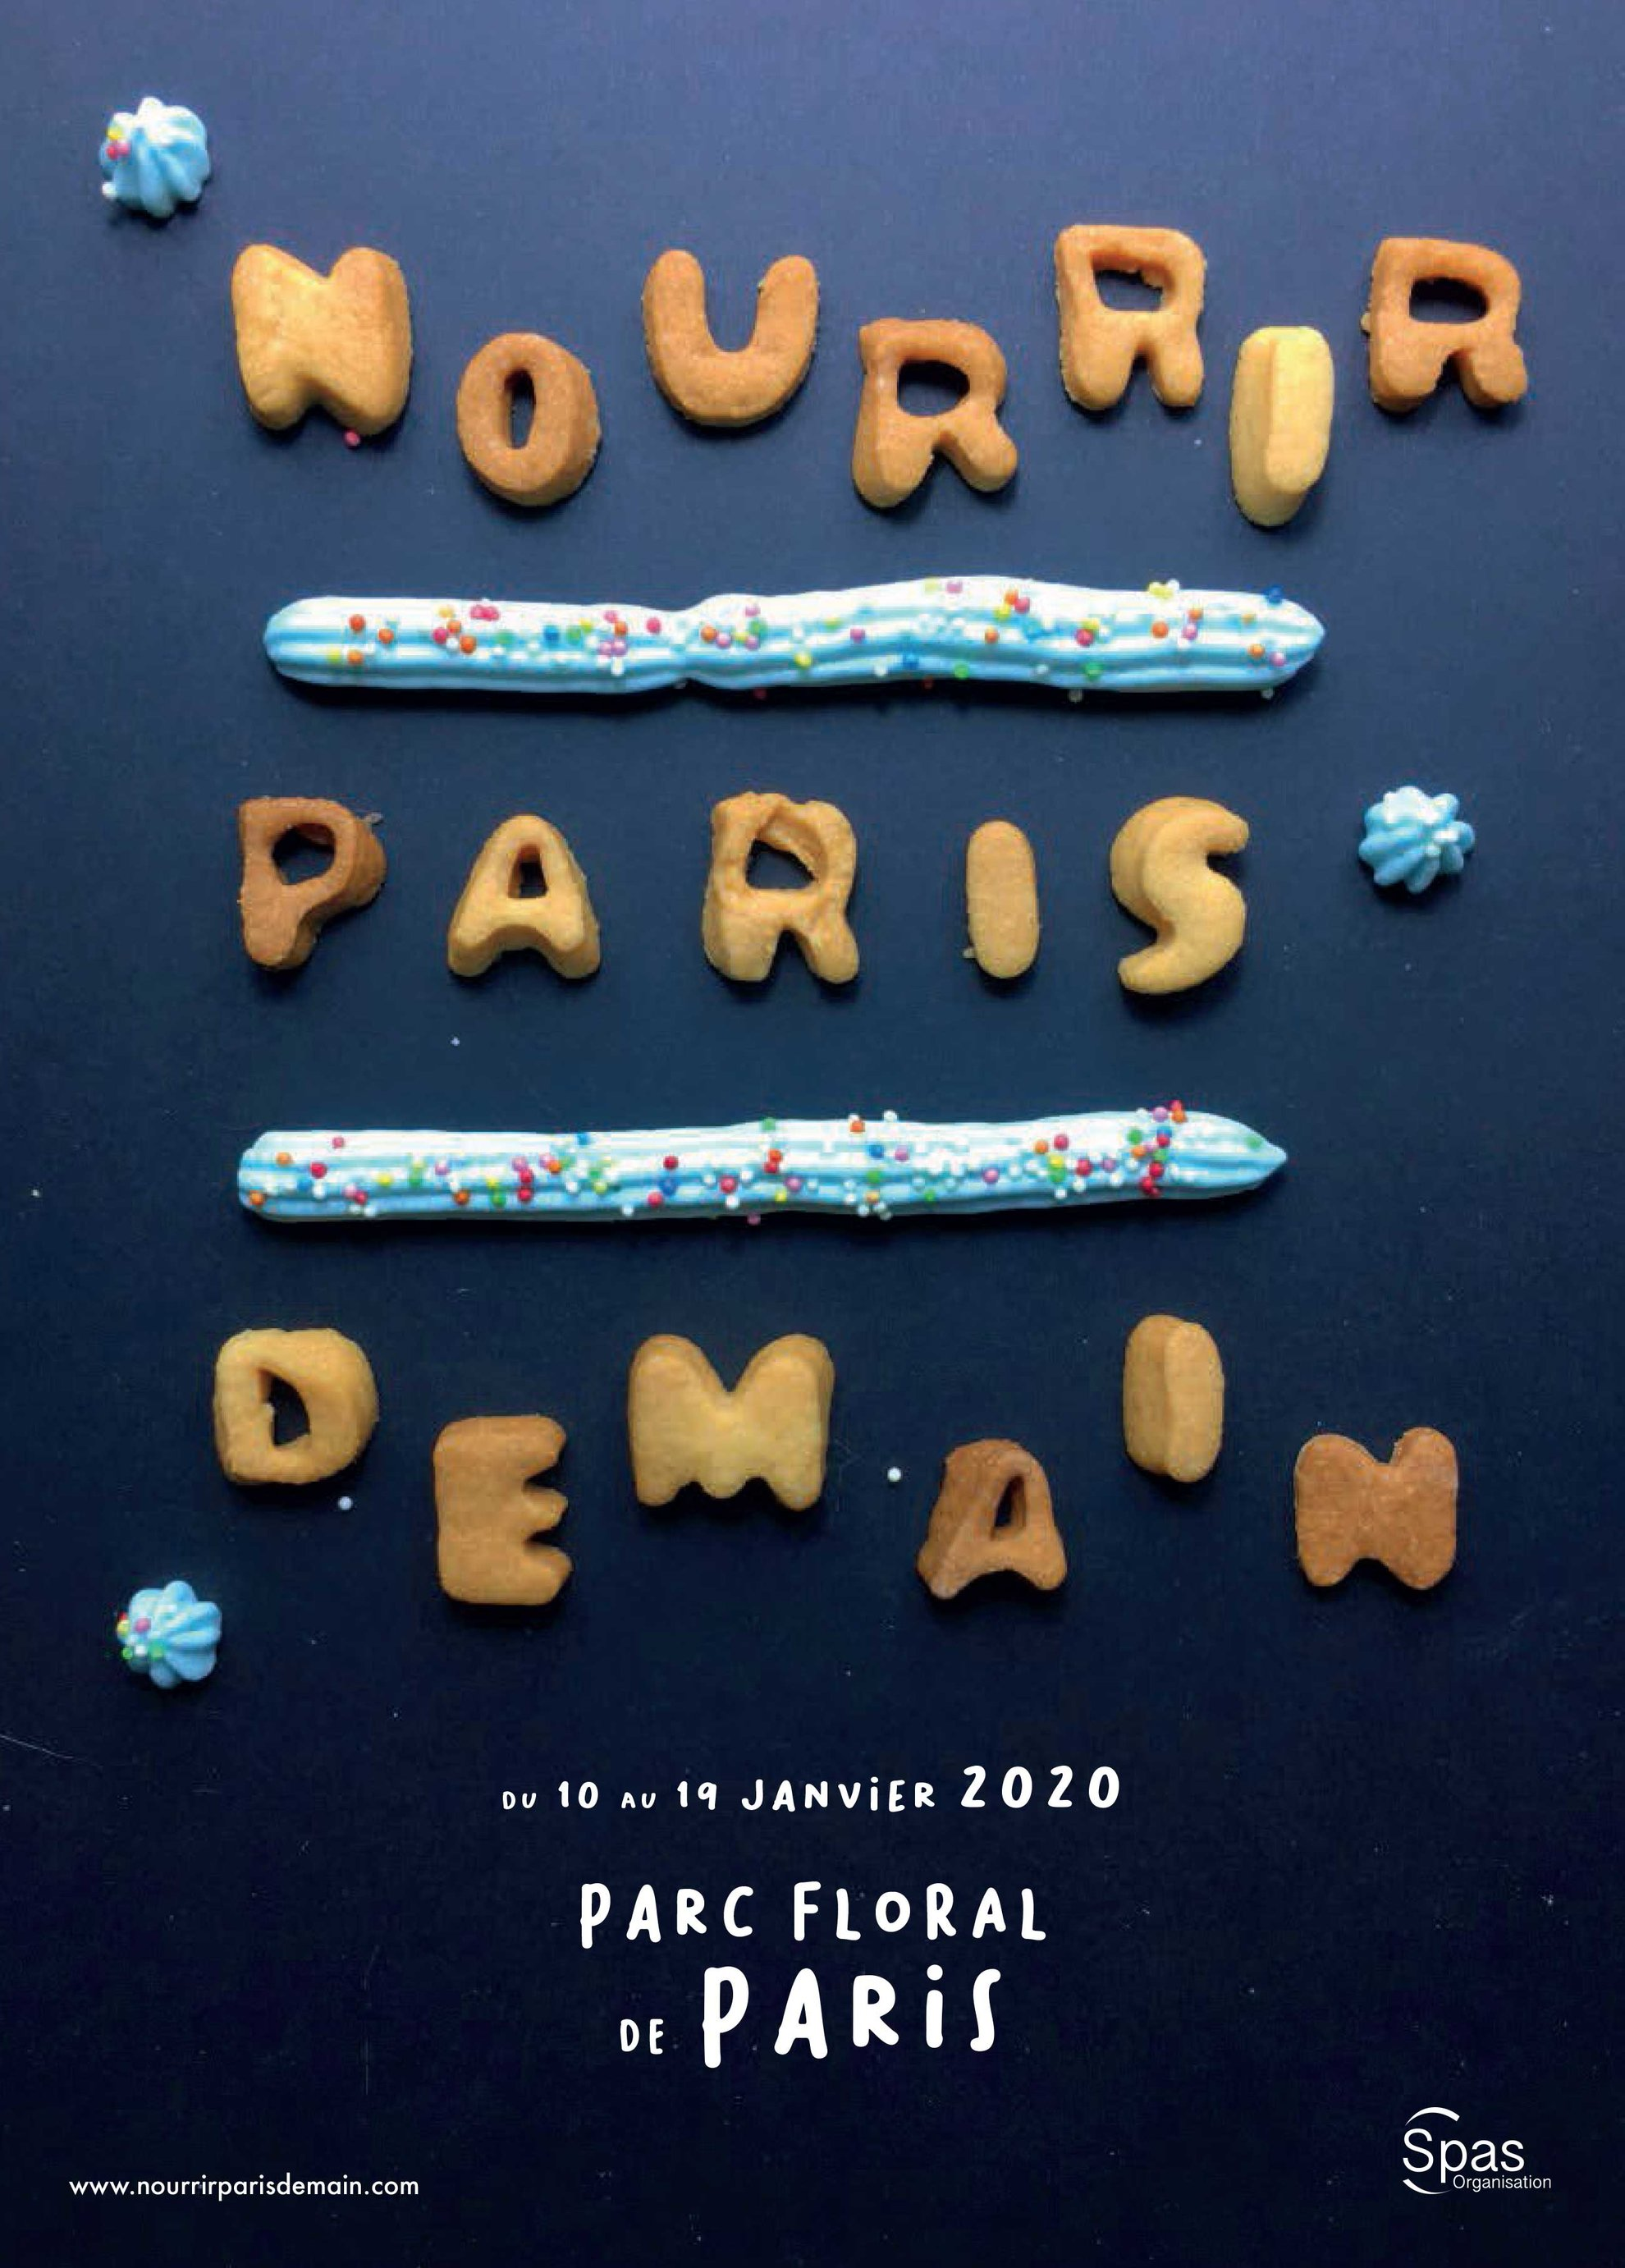 Affiche Nourrir paris demain.jpg